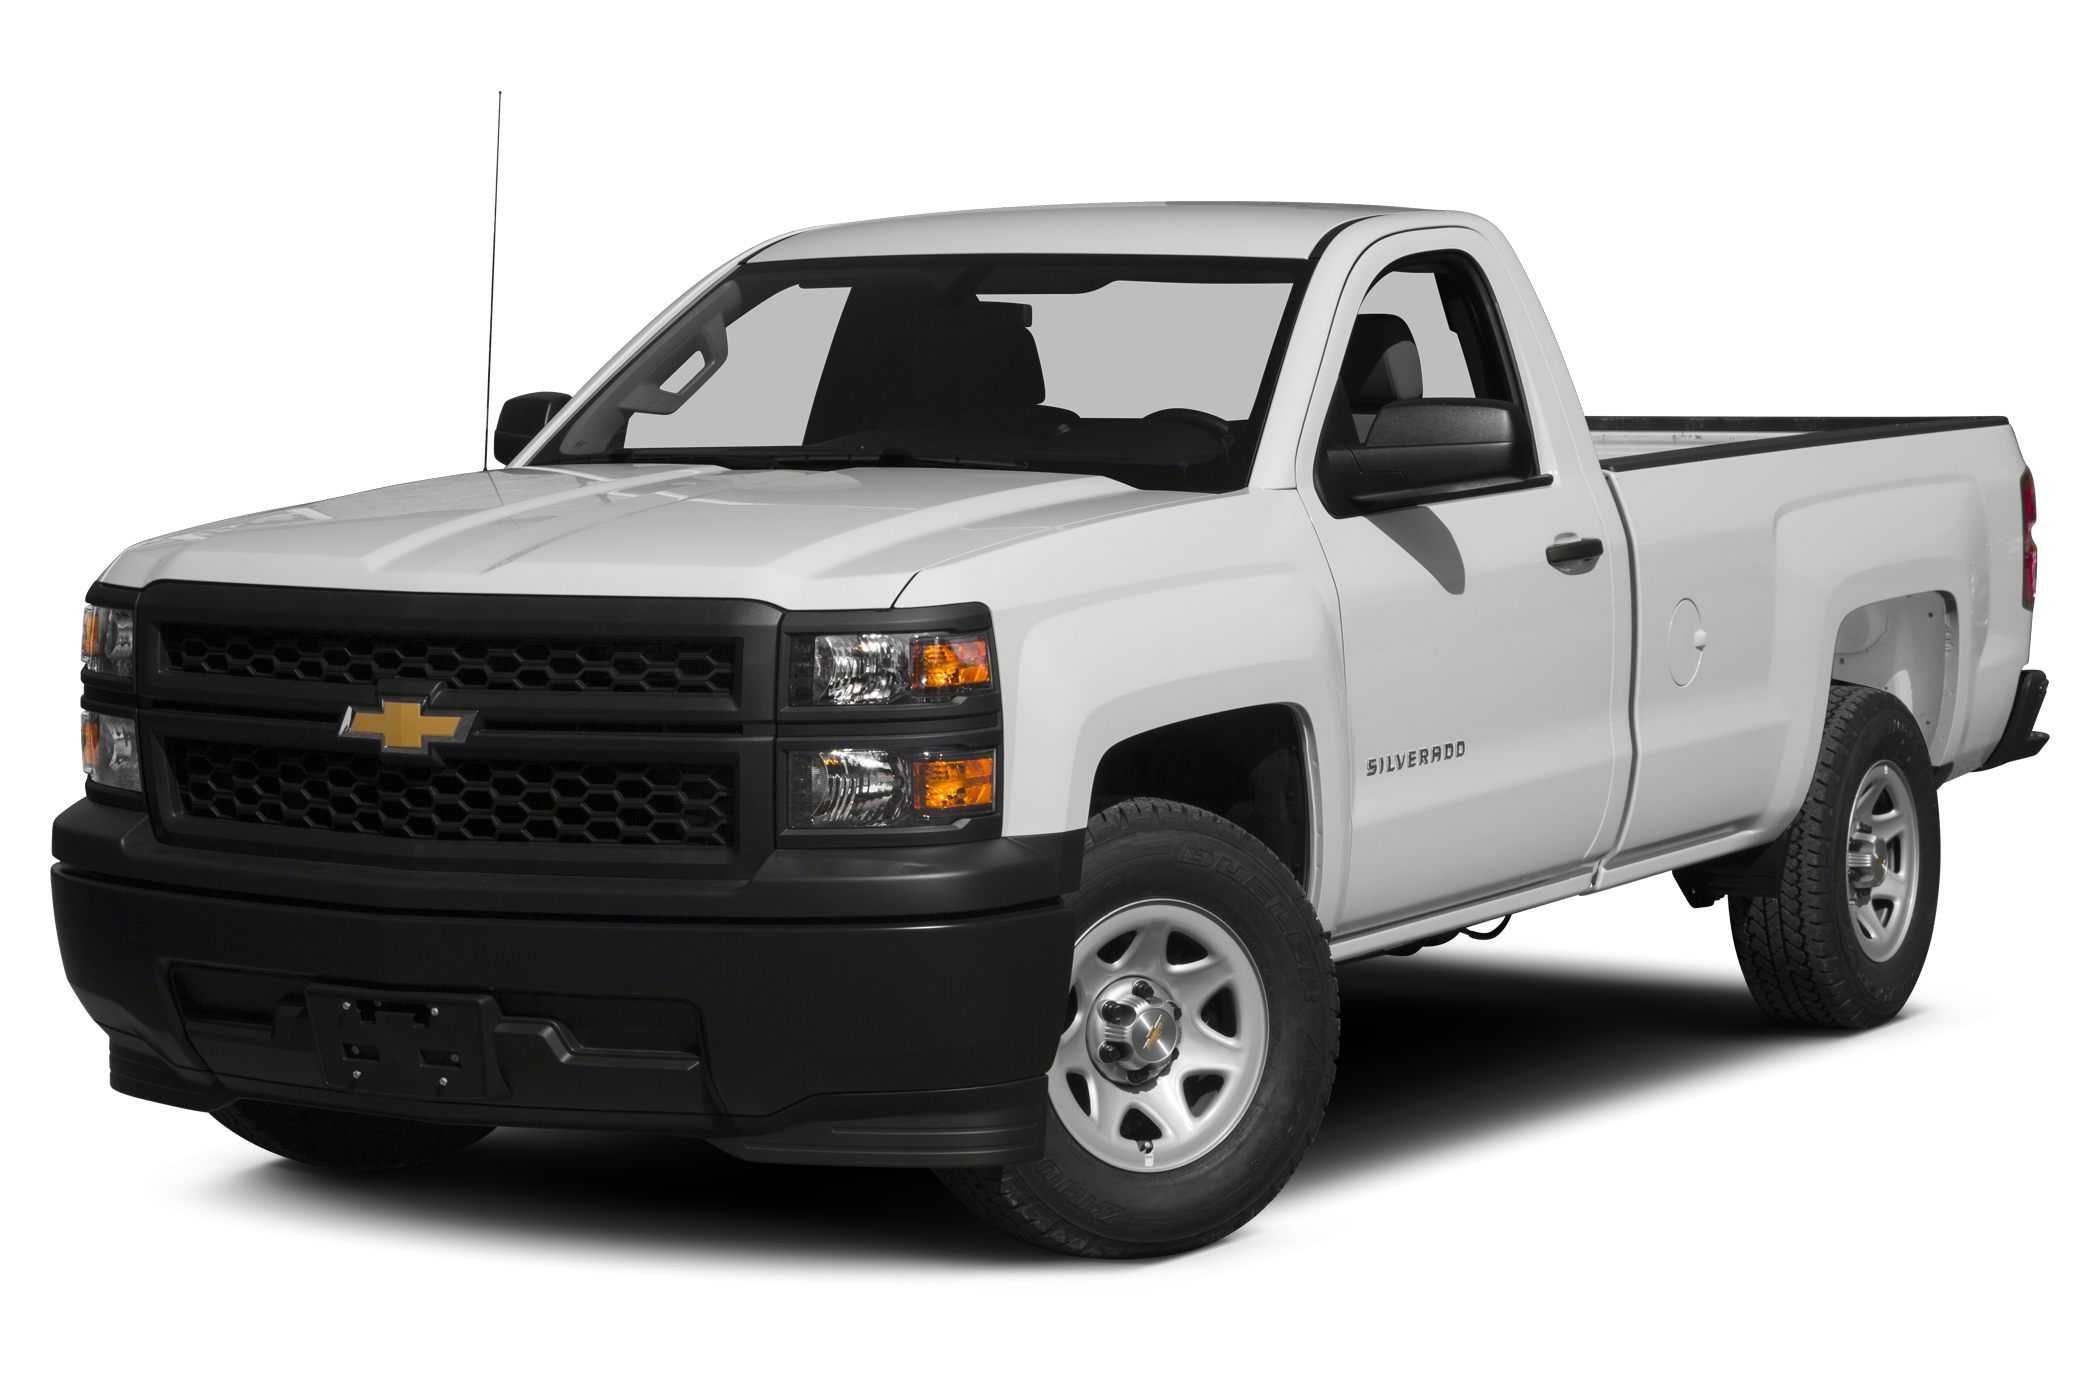 2014 Chevrolet Silverado 1500 1LT Crew Cab Pickup for sale in Decatur for $40,990 with 8,167 miles.